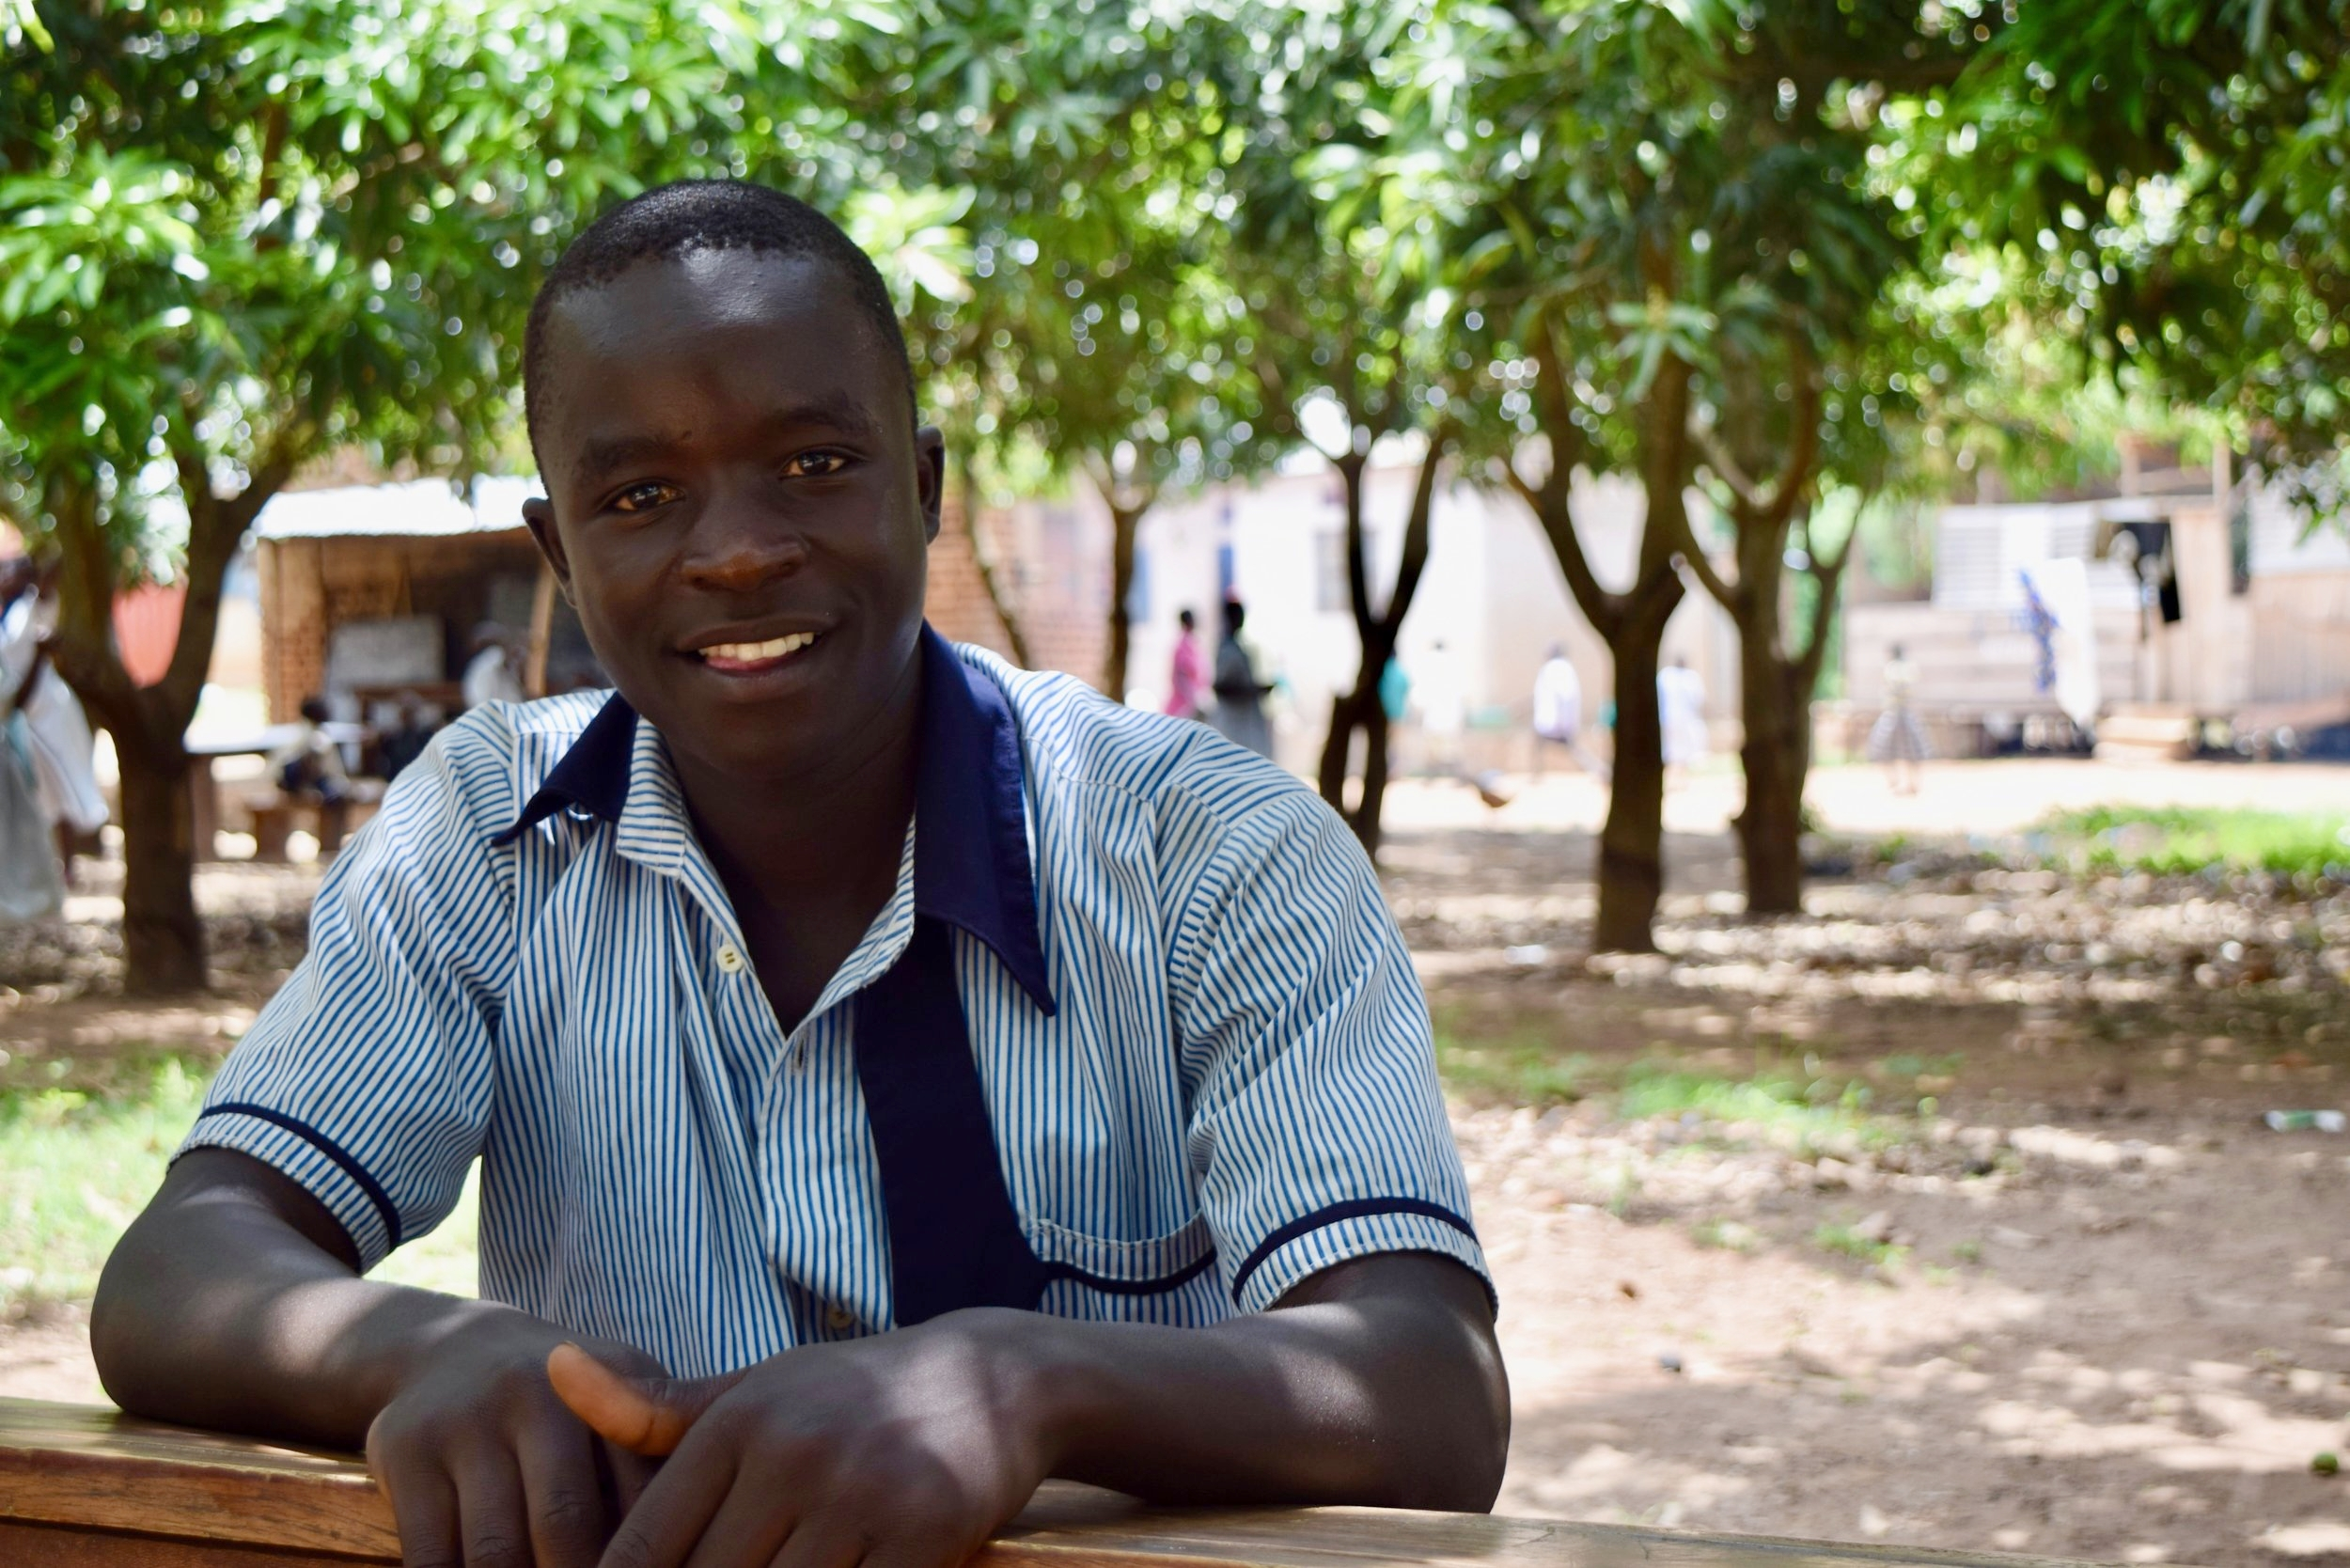 Meet Avir, an inspiring student and TWSB Scholar.